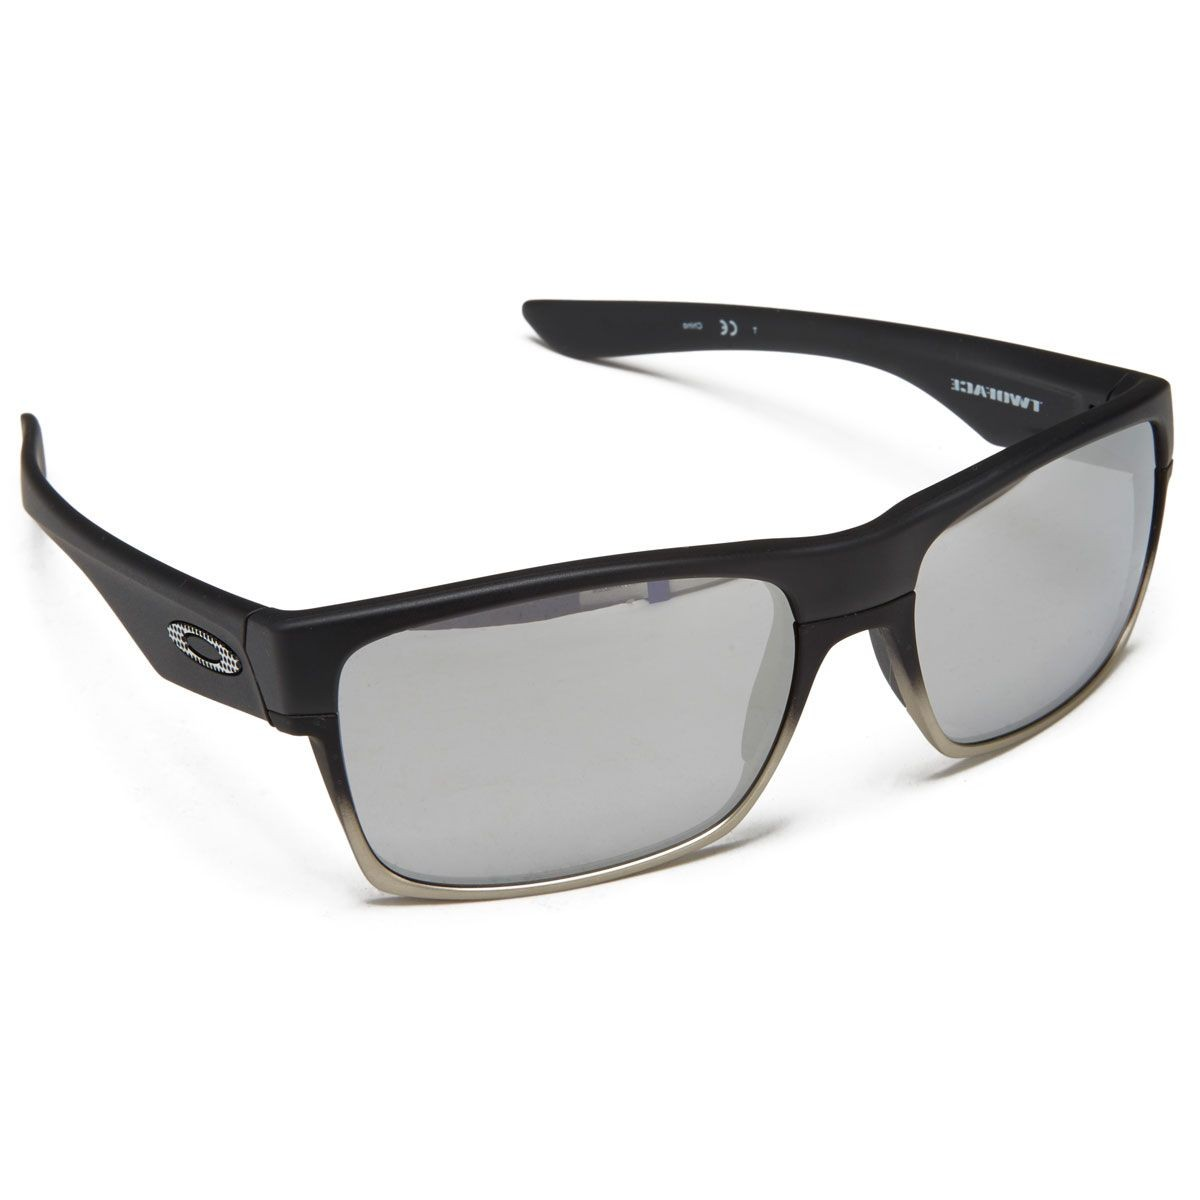 88f46b952b4 Oakley Two Face Sunglasses - Machinist Matte Black Chrome Iridium